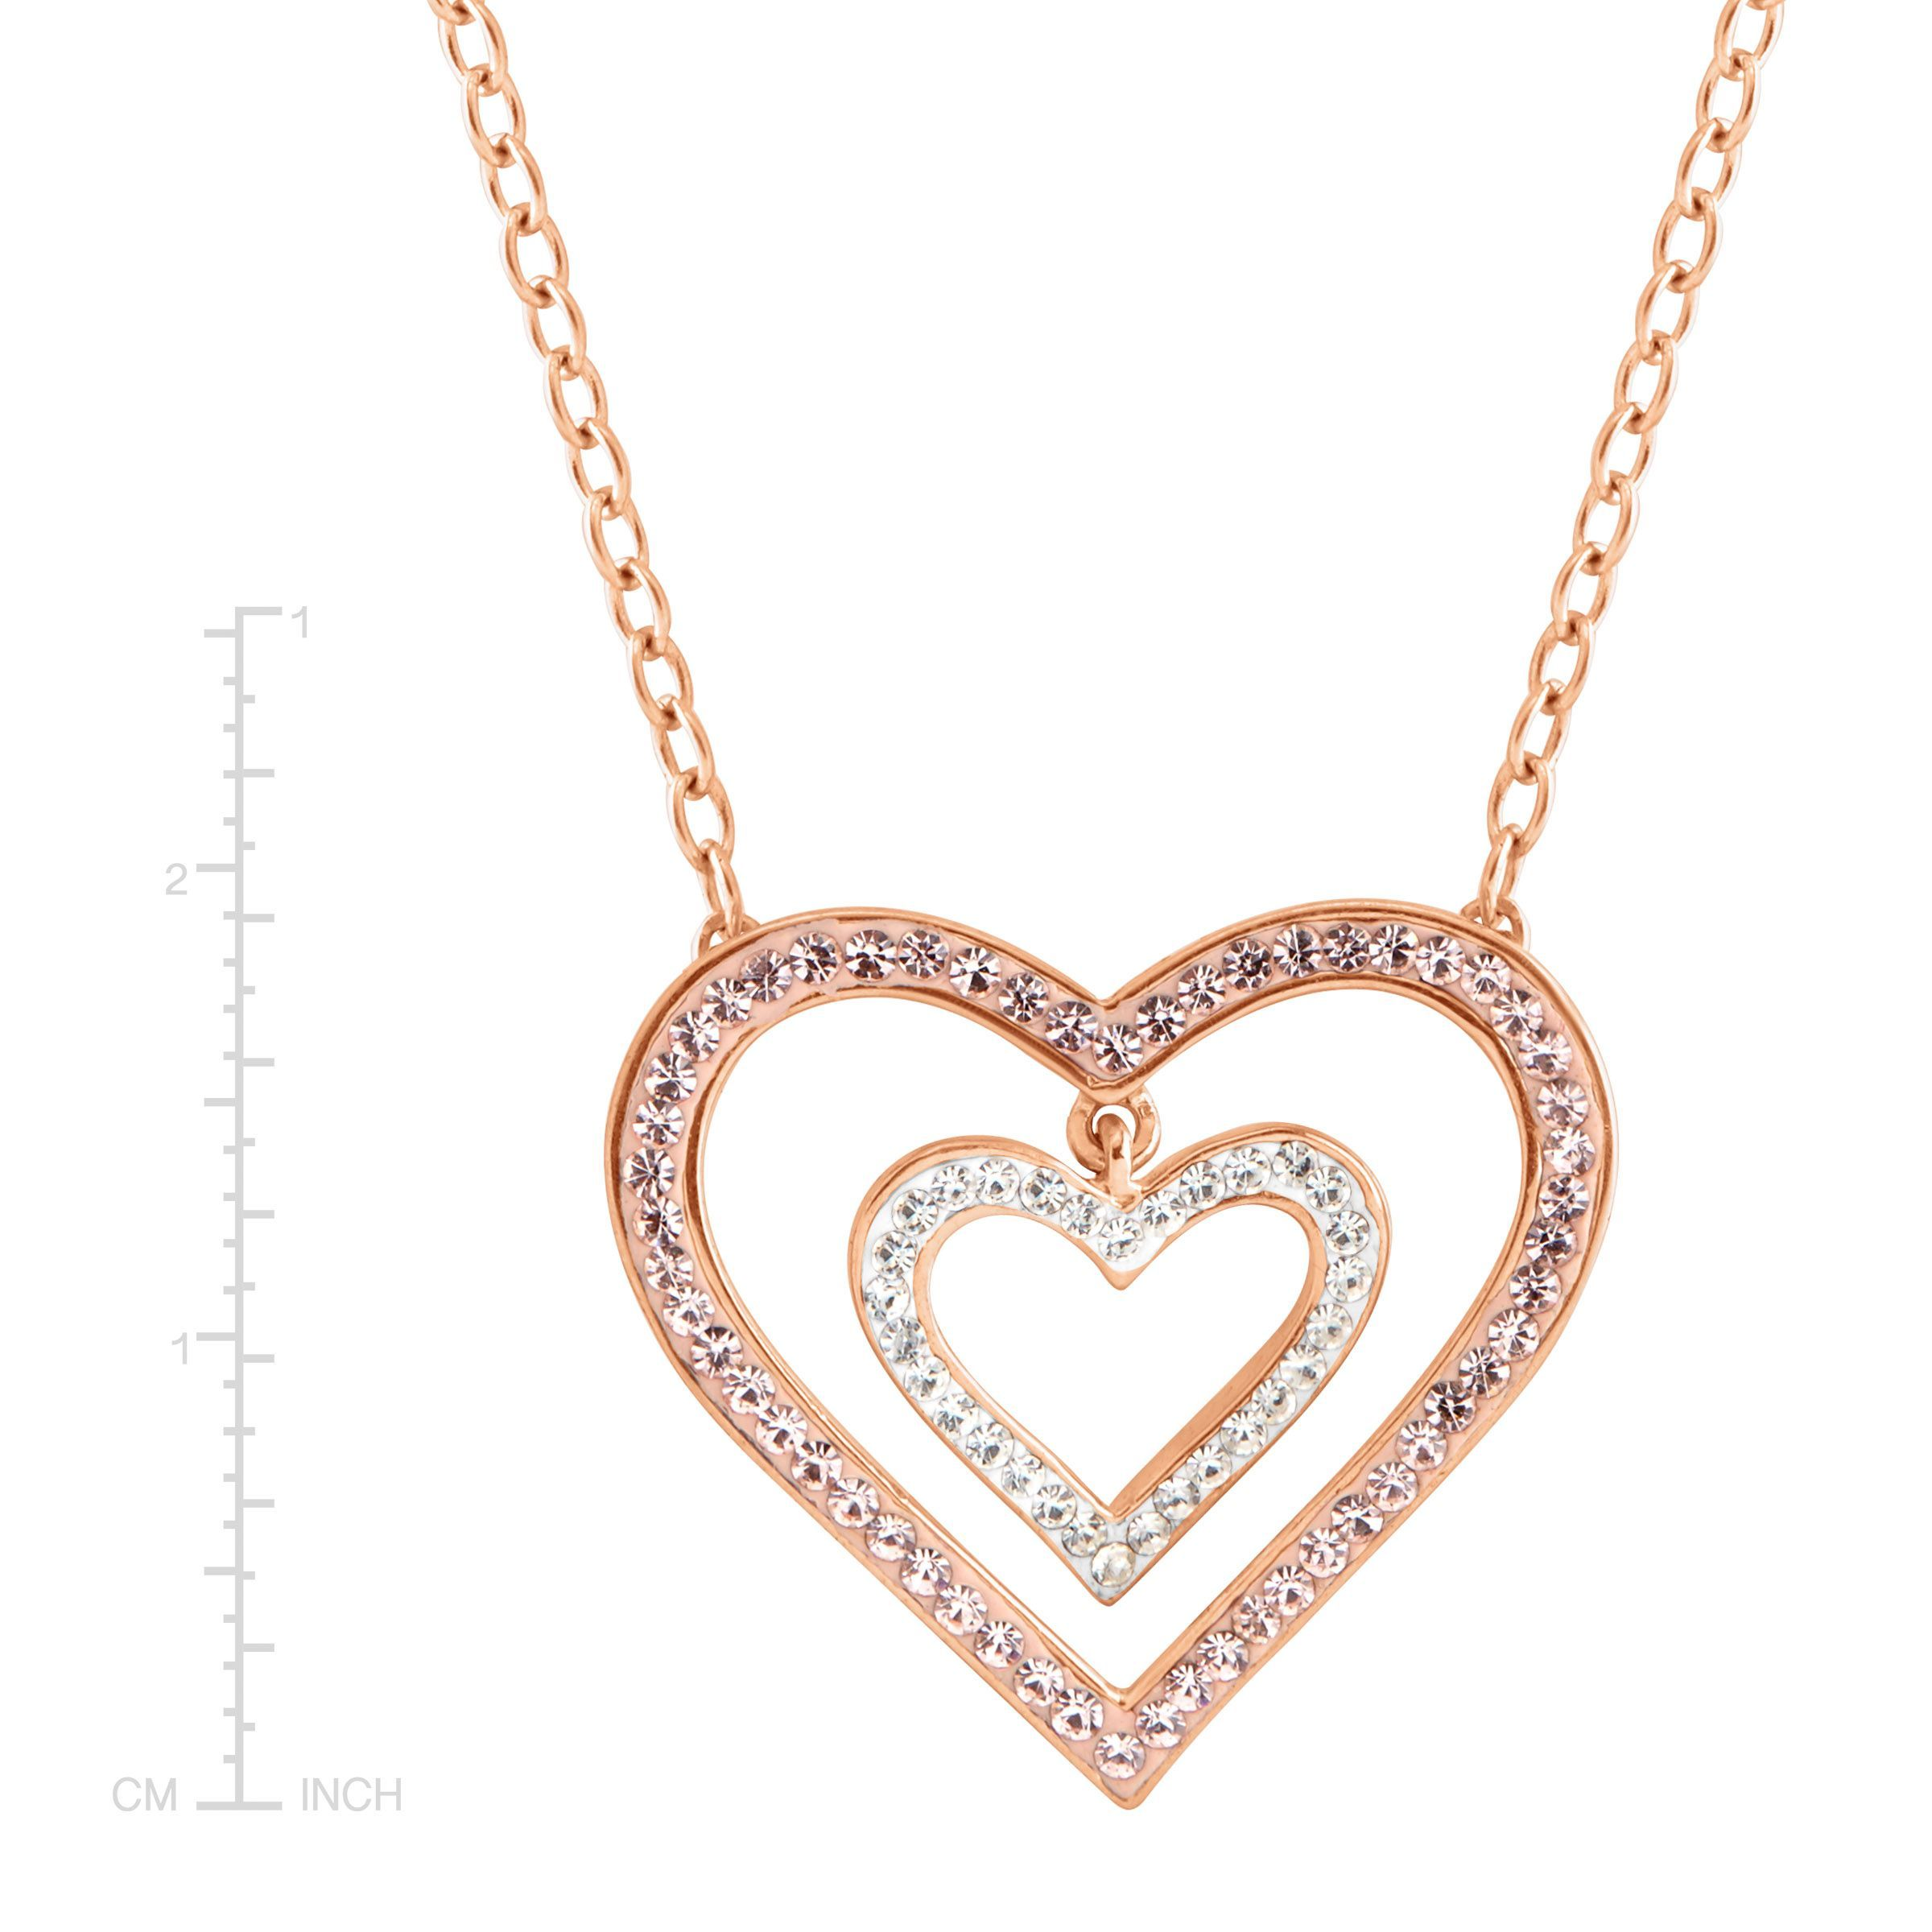 ec209774d35d0 Details about Crystaluxe Heart Necklace with Swarovski Crystals in 18K Rose  Gold-Plated Silver